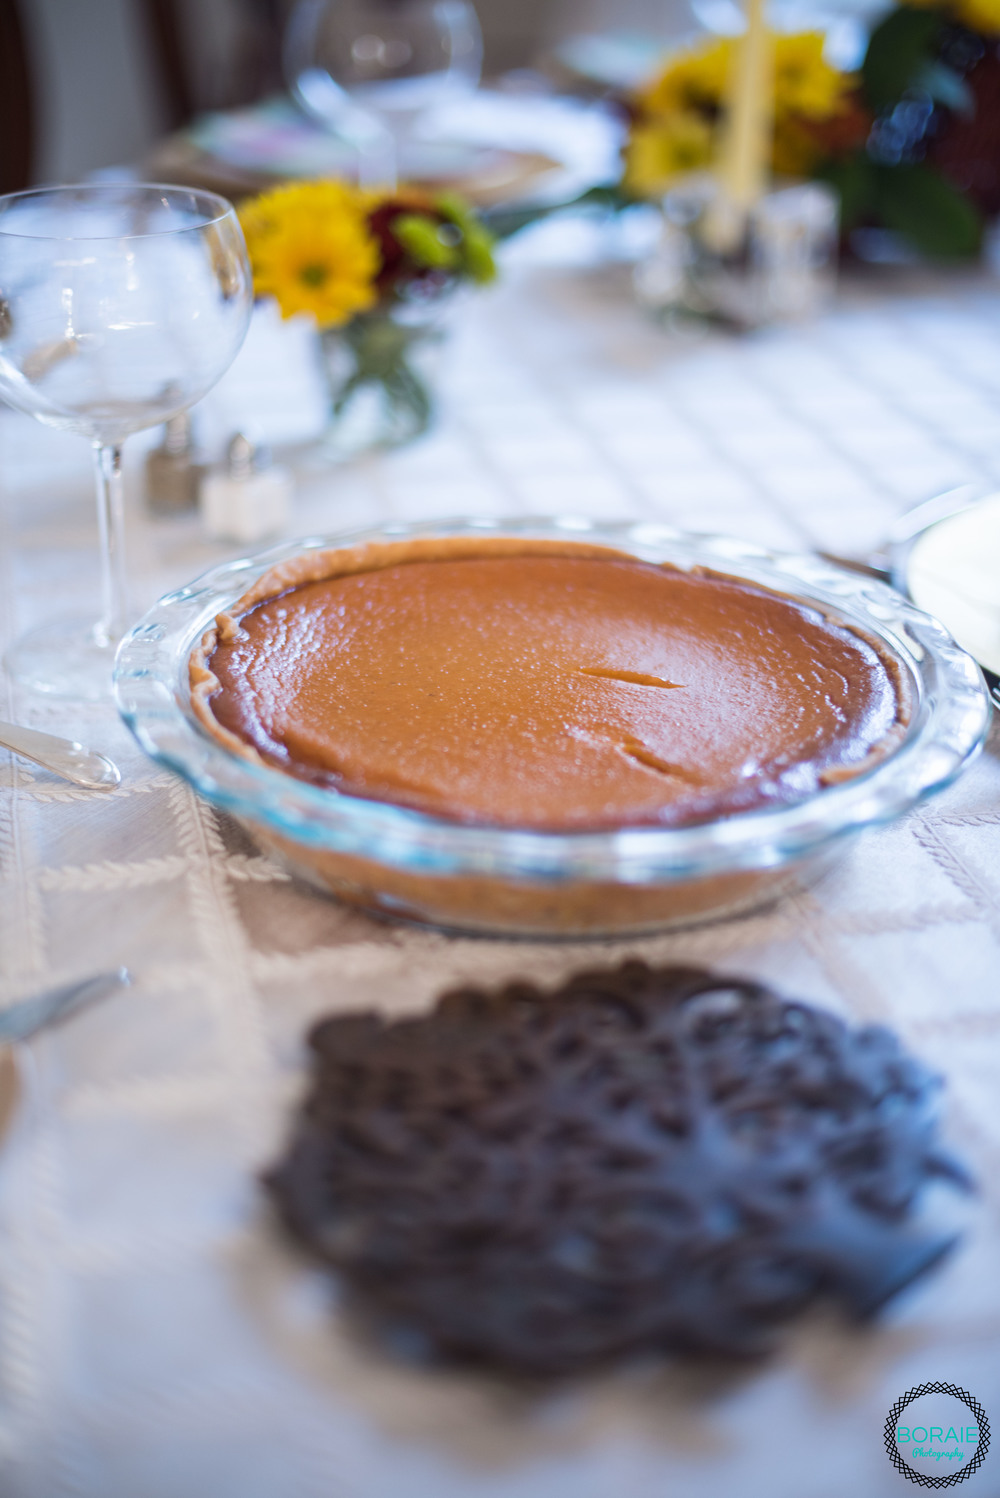 Thanksgiving - (www.boraiephotography.com) -15.JPG